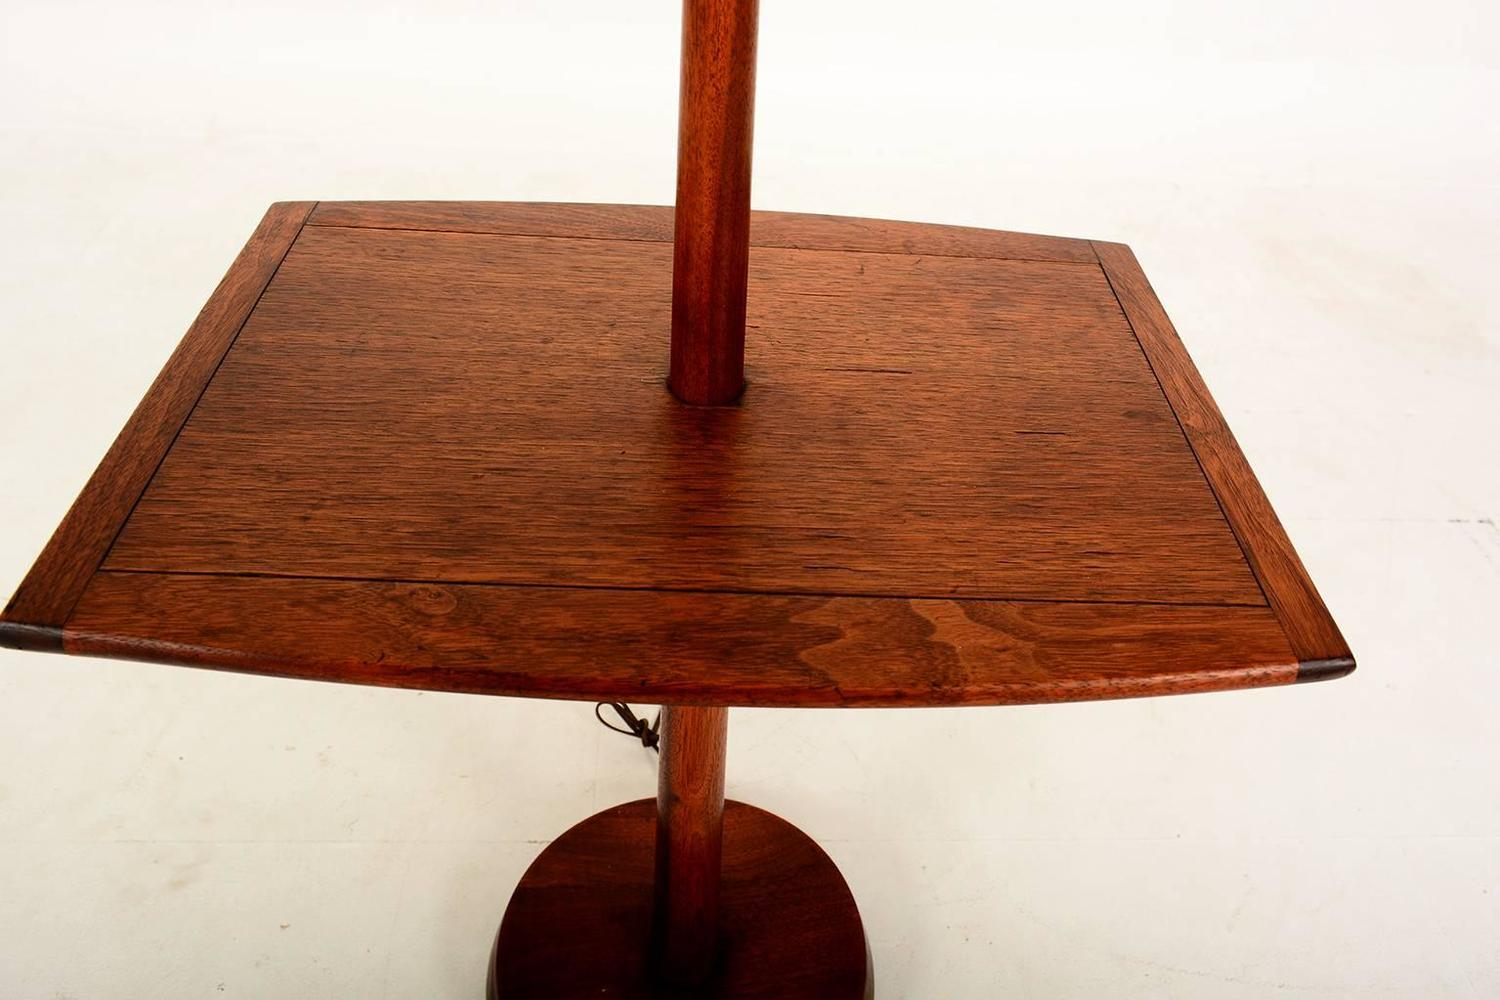 sculptural walnut floor lamp with built in table for sale at 1stdibs. Black Bedroom Furniture Sets. Home Design Ideas